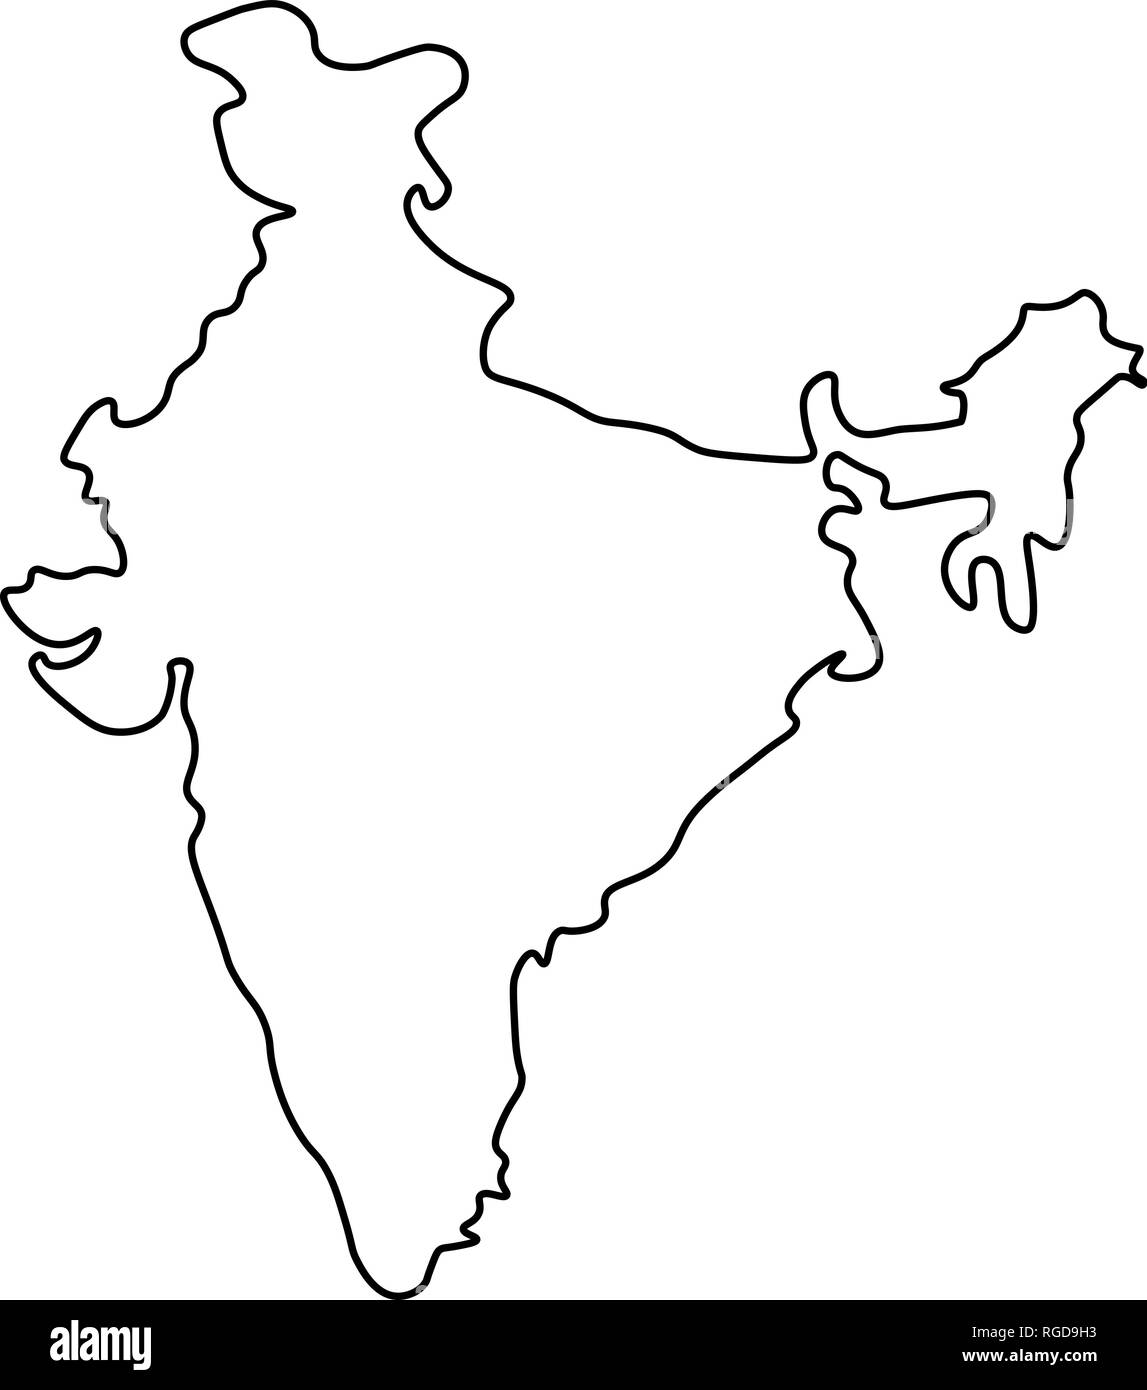 india map outline vector Map Of India Outline Silhouette Of India Map Vector india map outline vector